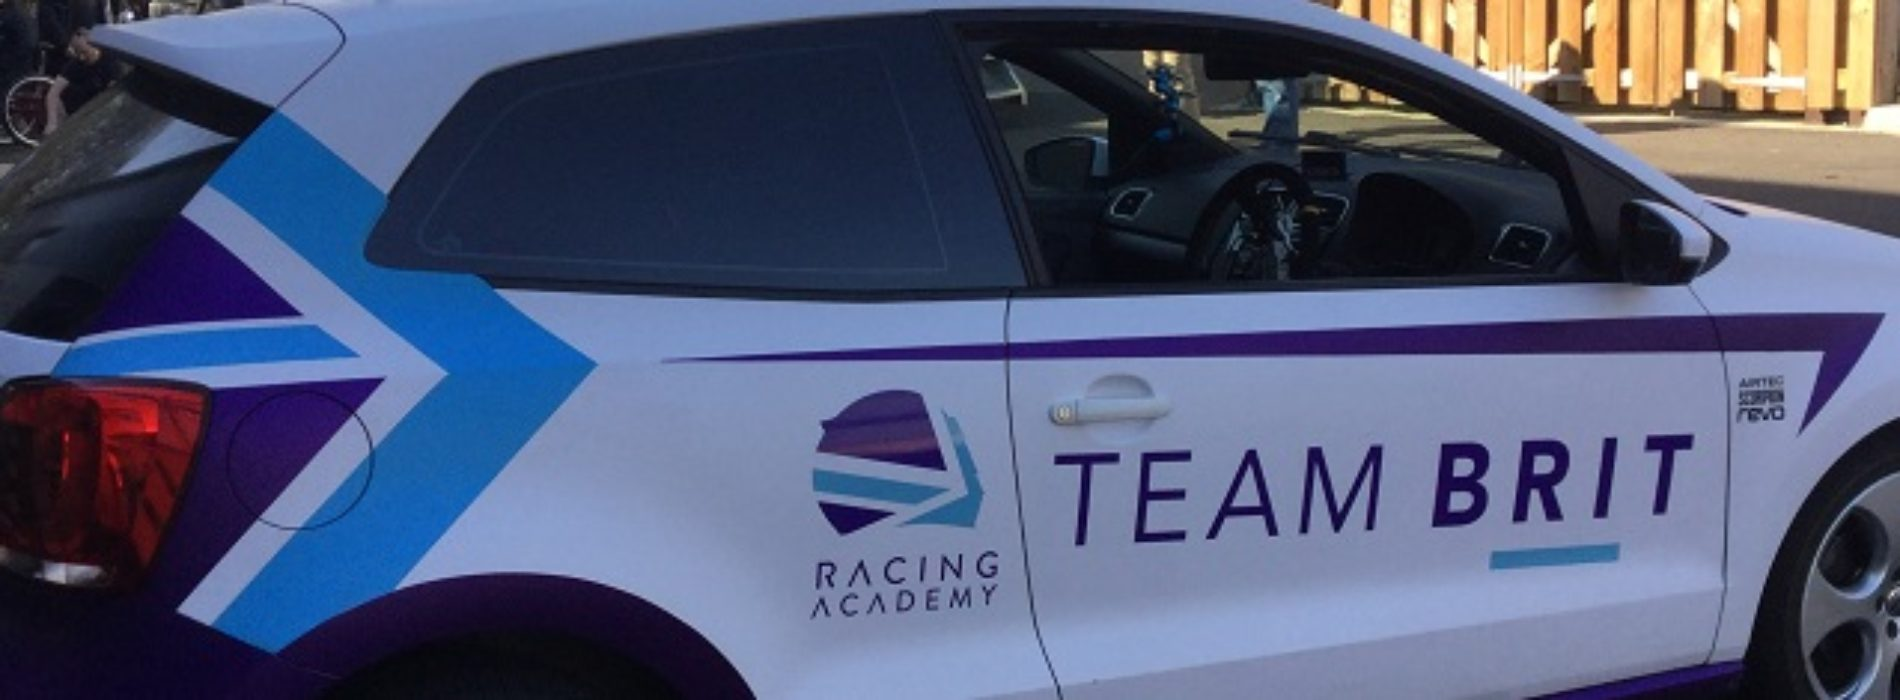 Team BRIT and Nicolas Hamilton launch the UK's first racing academy for disabled drivers